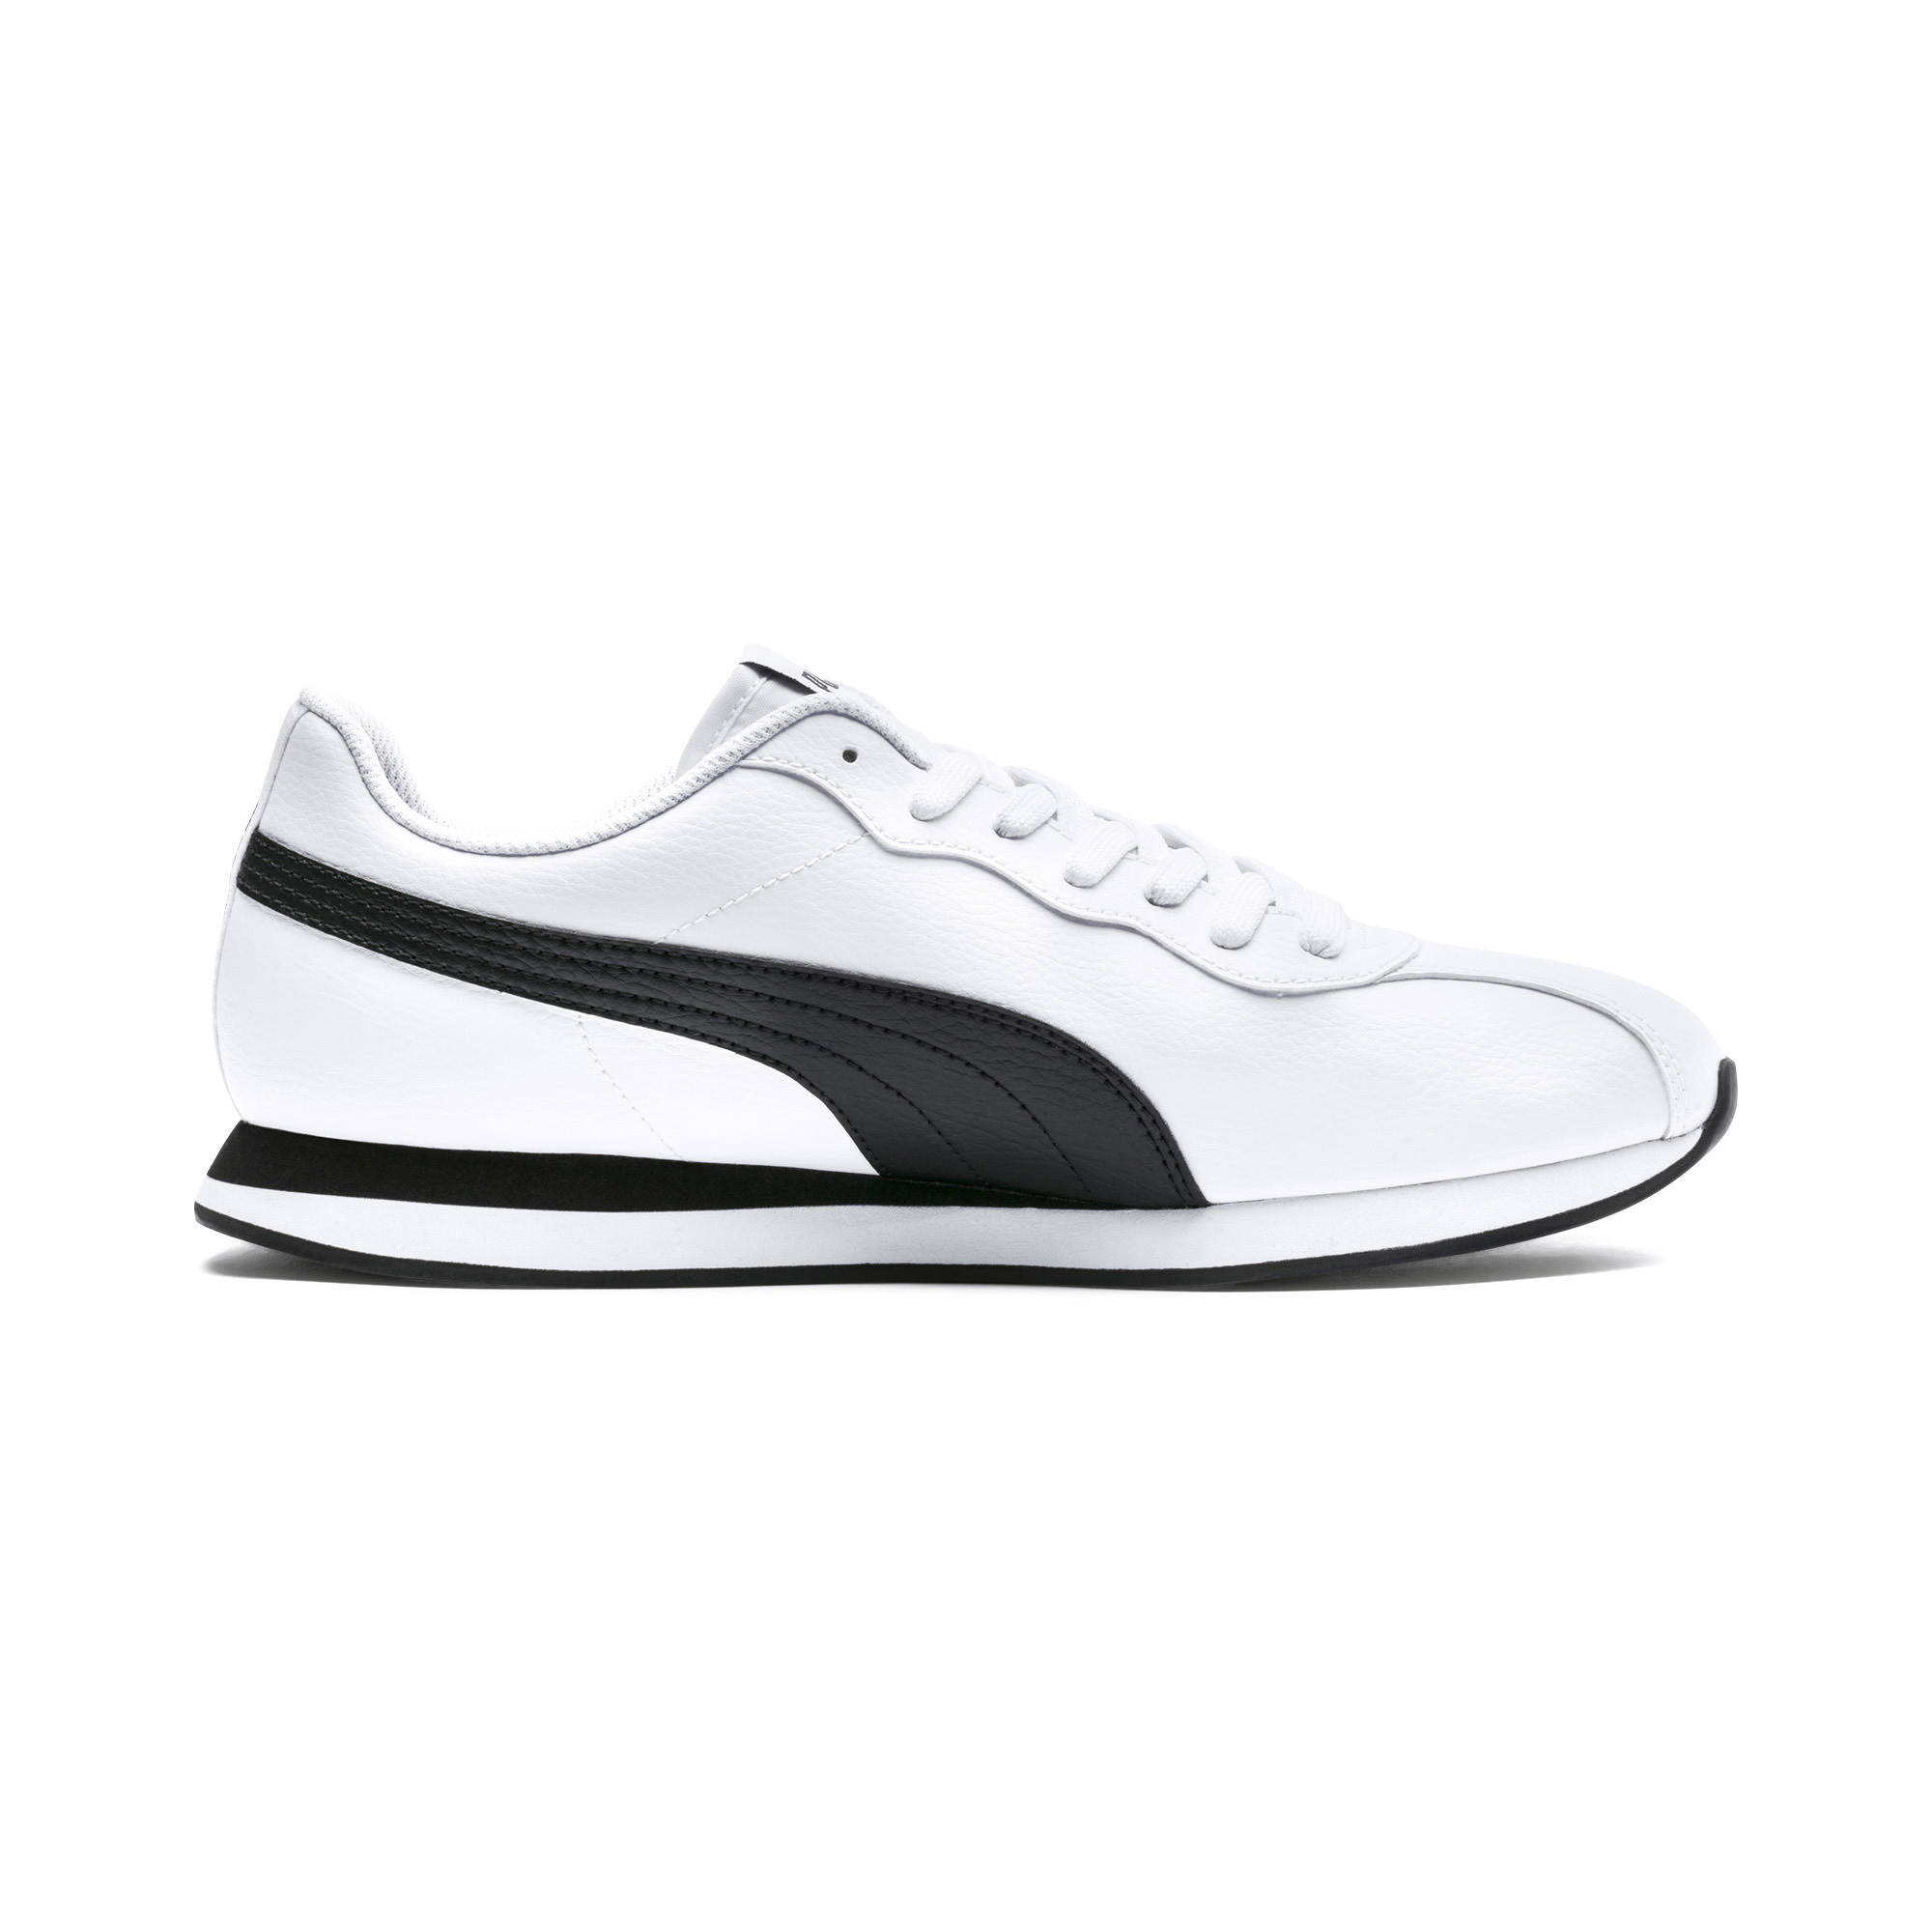 PUMA-Turin-II-Men-039-s-Sneakers-Men-Shoe-Basics thumbnail 16